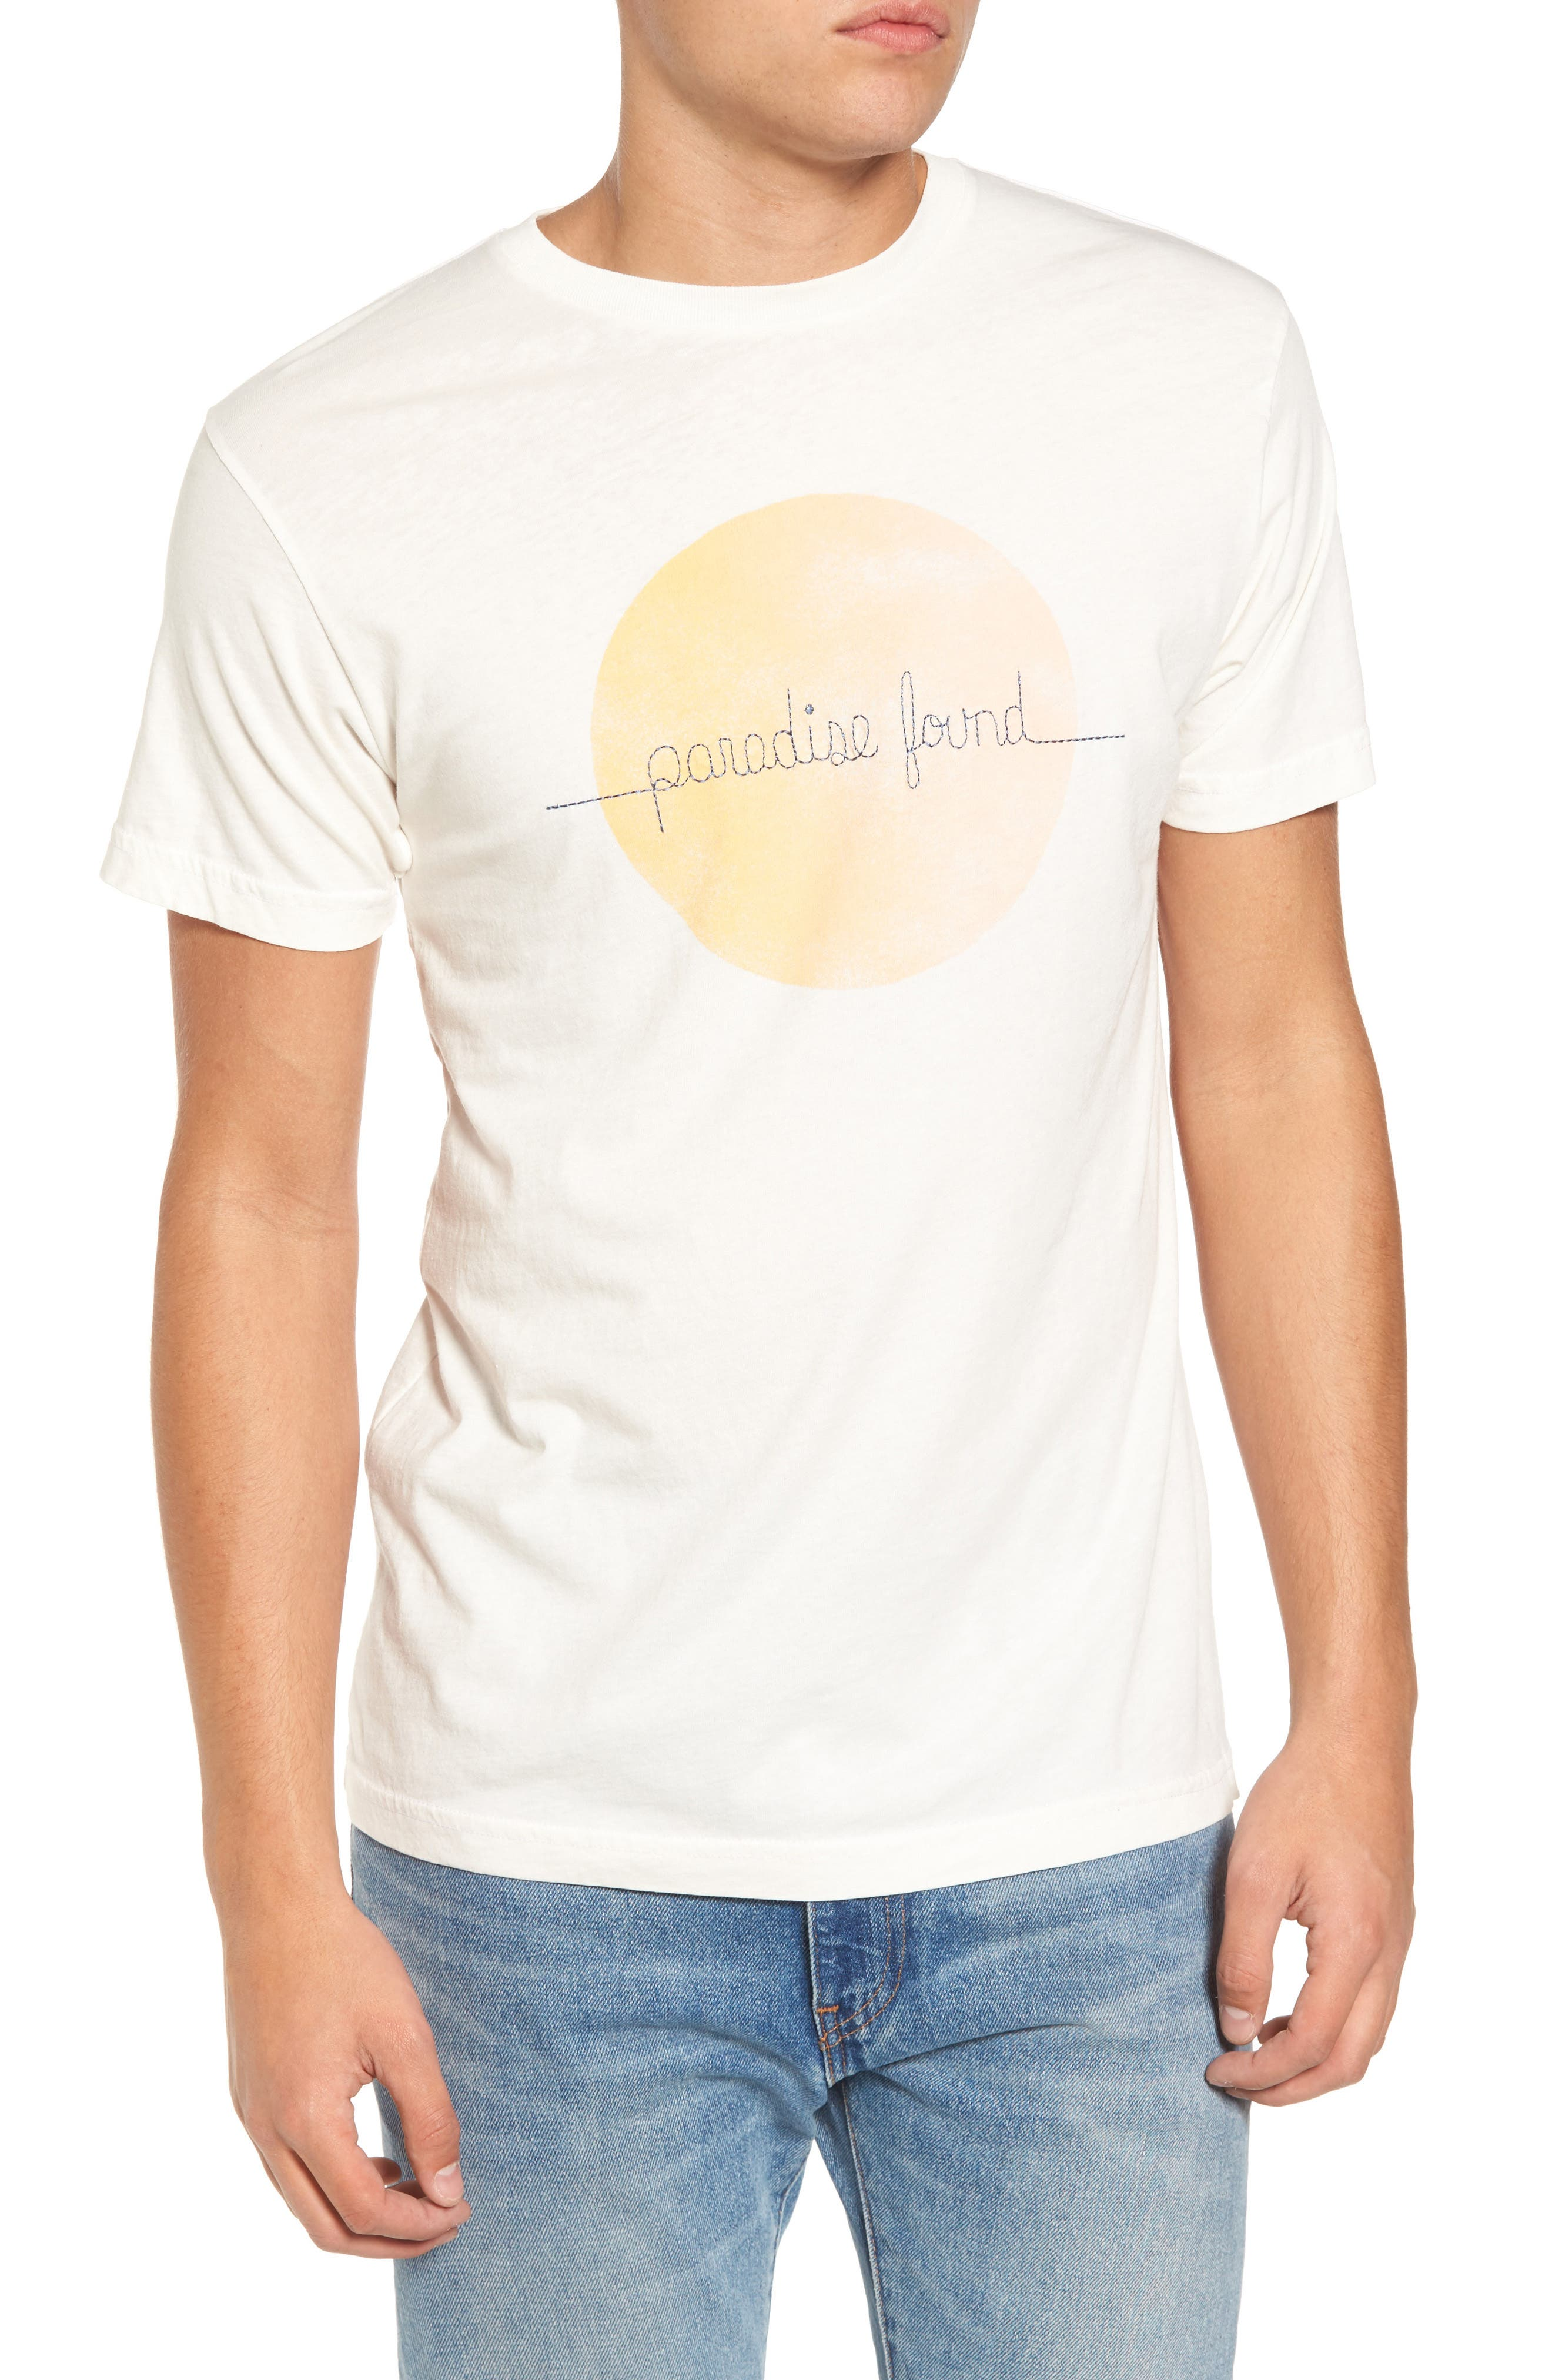 Paradise Found Embroidered T-Shirt,                             Main thumbnail 1, color,                             101